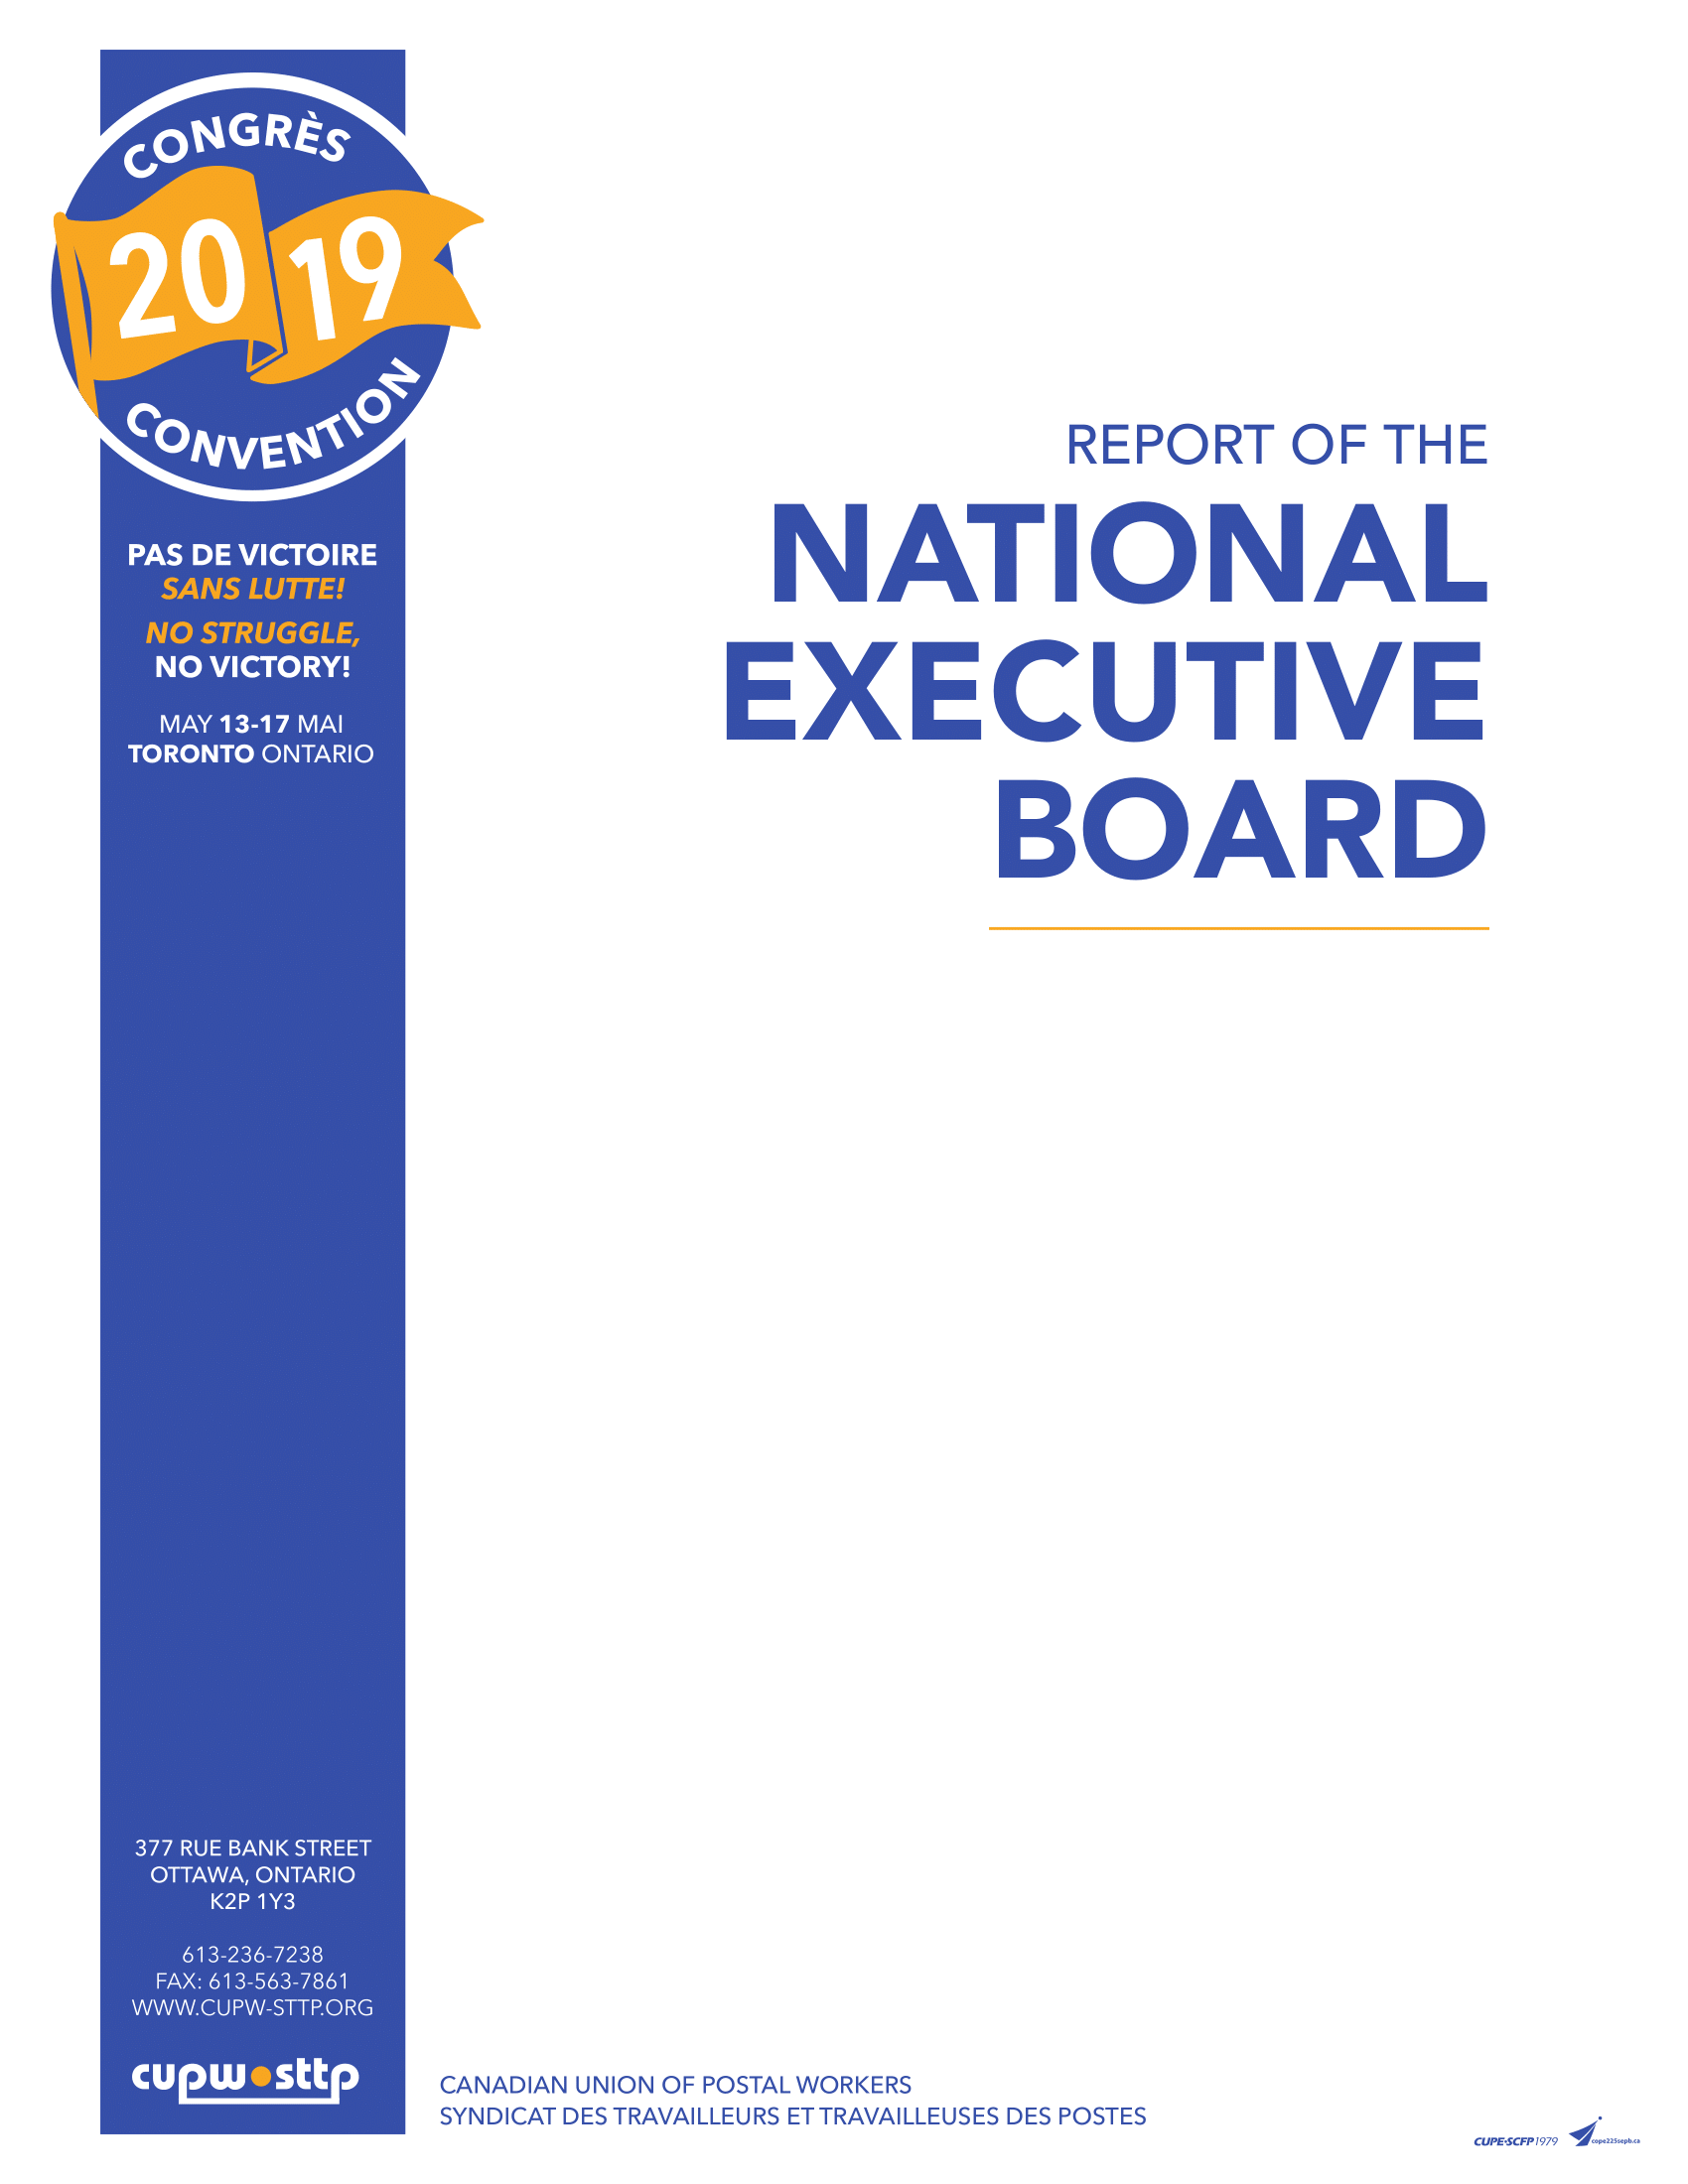 Report of the National Executive Board (2019)